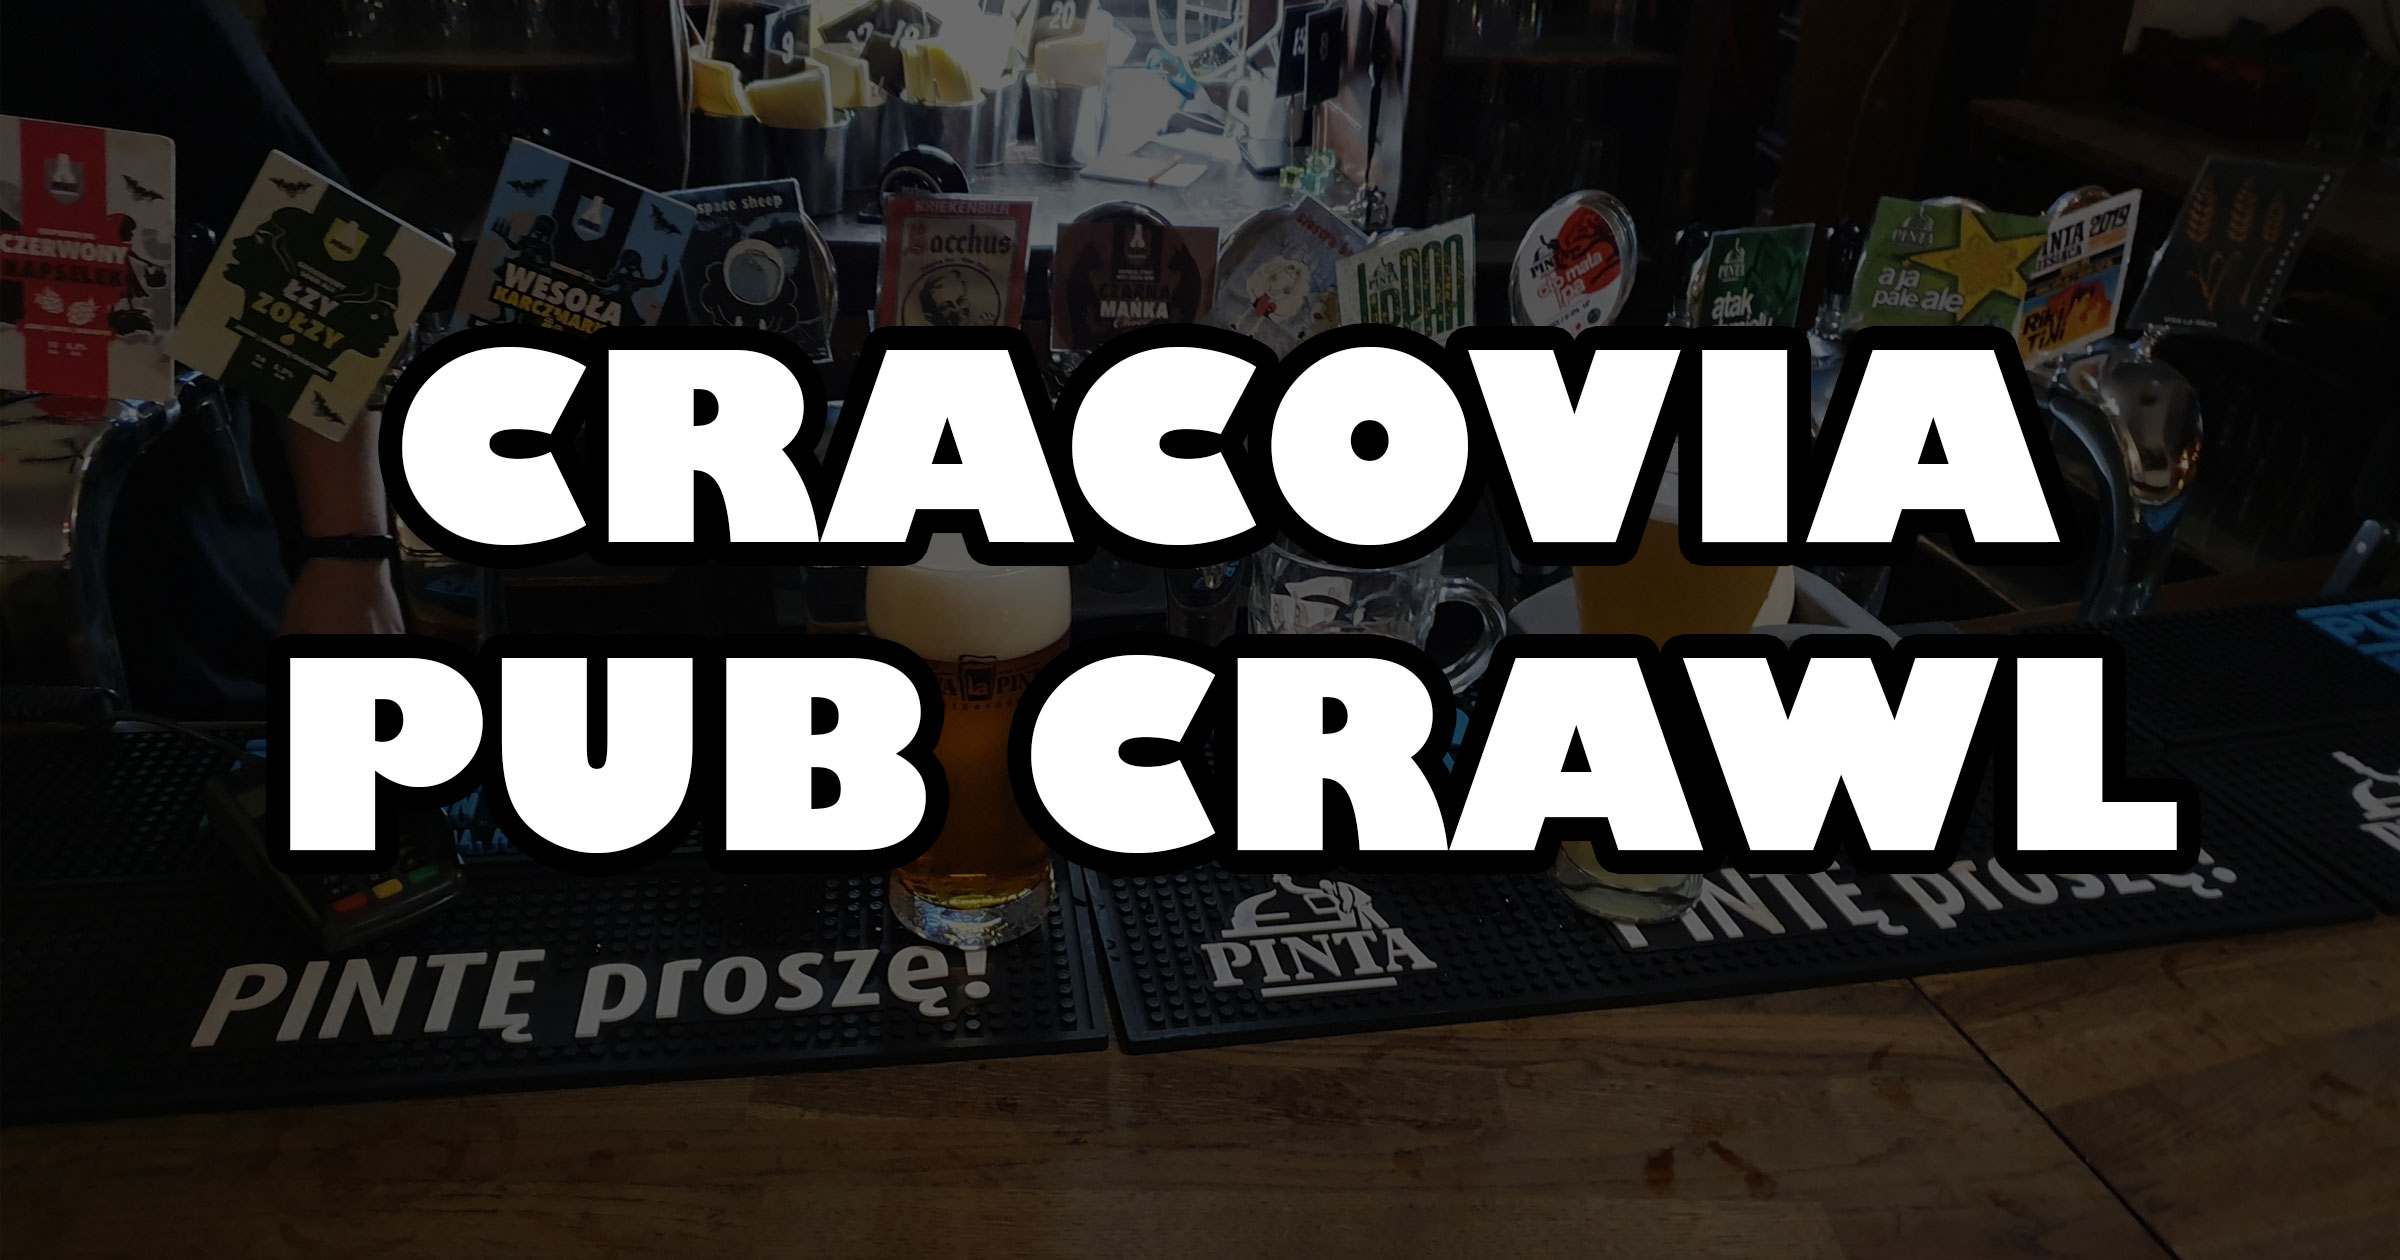 pub-crawl-cracovia